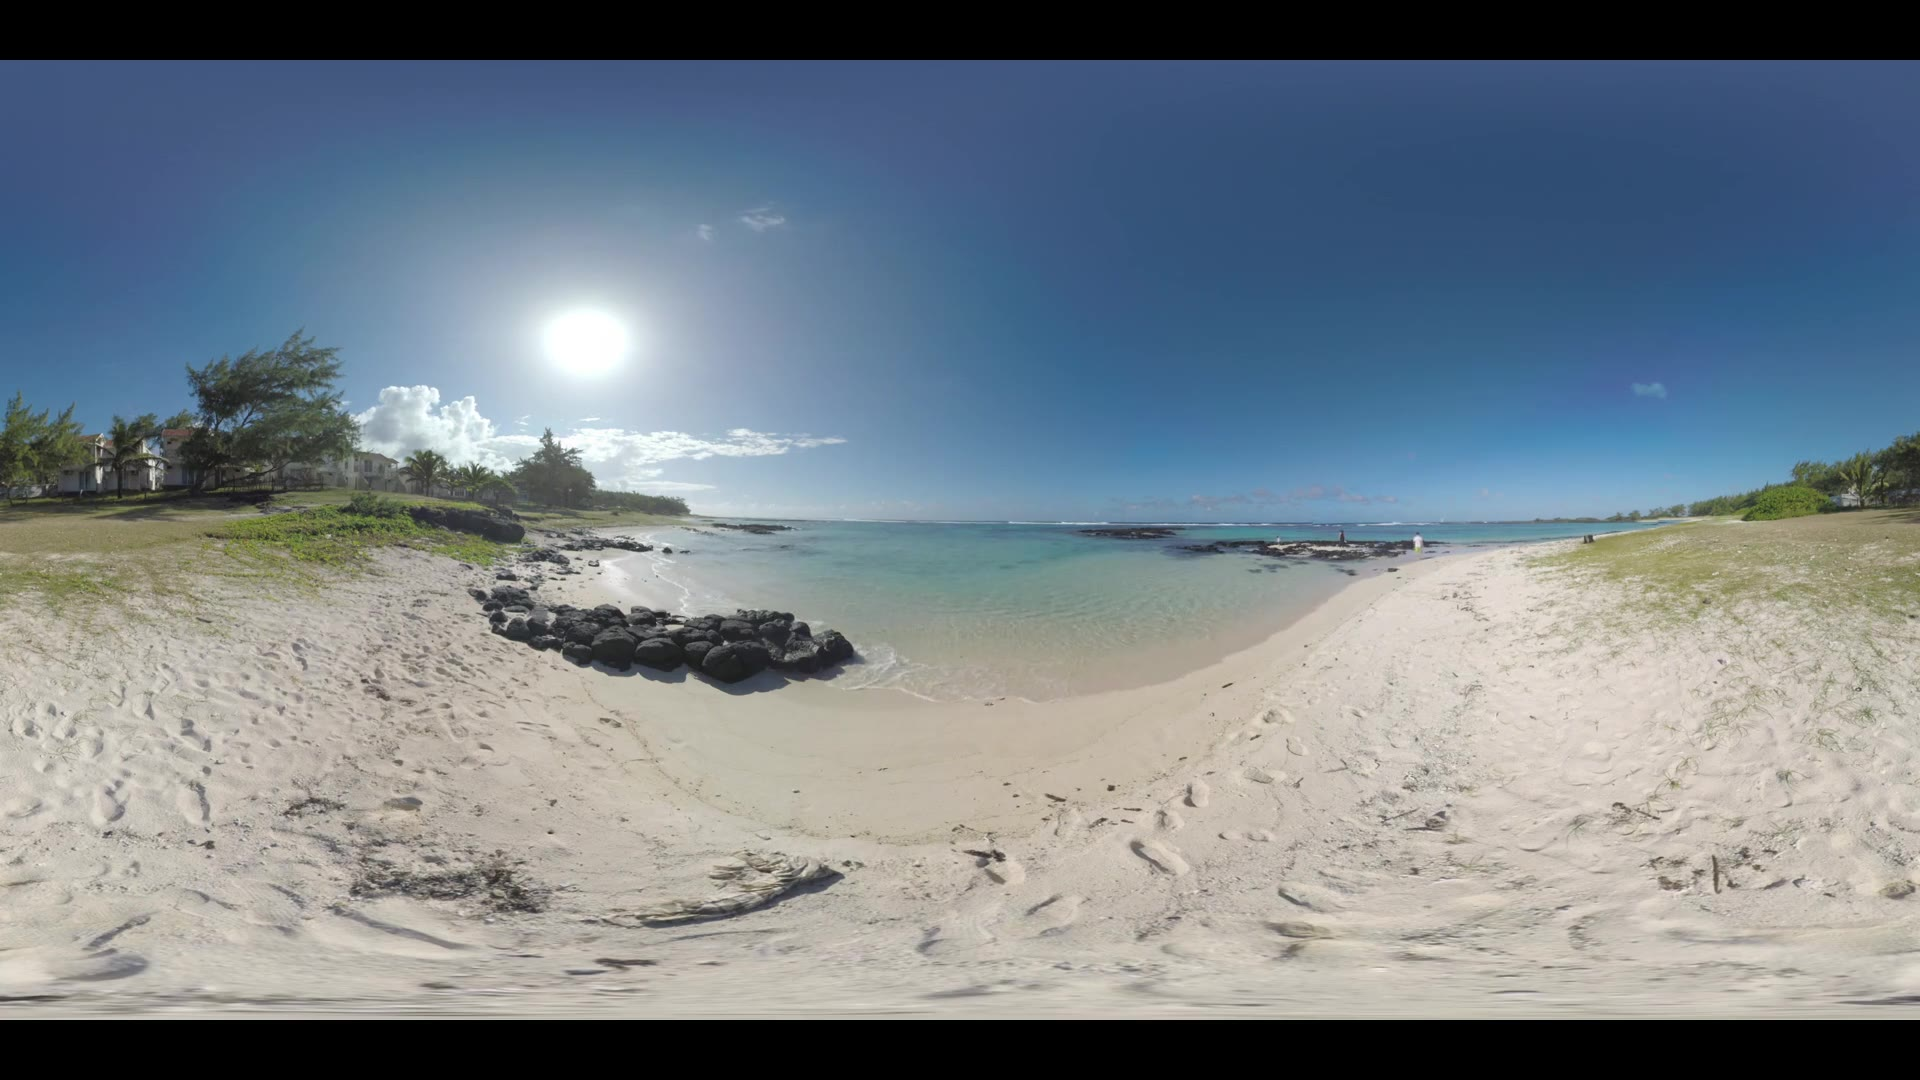 360 VR video. Blue ocean panorama and view of the beach with cottages alongside. Family spending bright sunny day outdoor and exploring black rocks on the coast. Mauritius scene